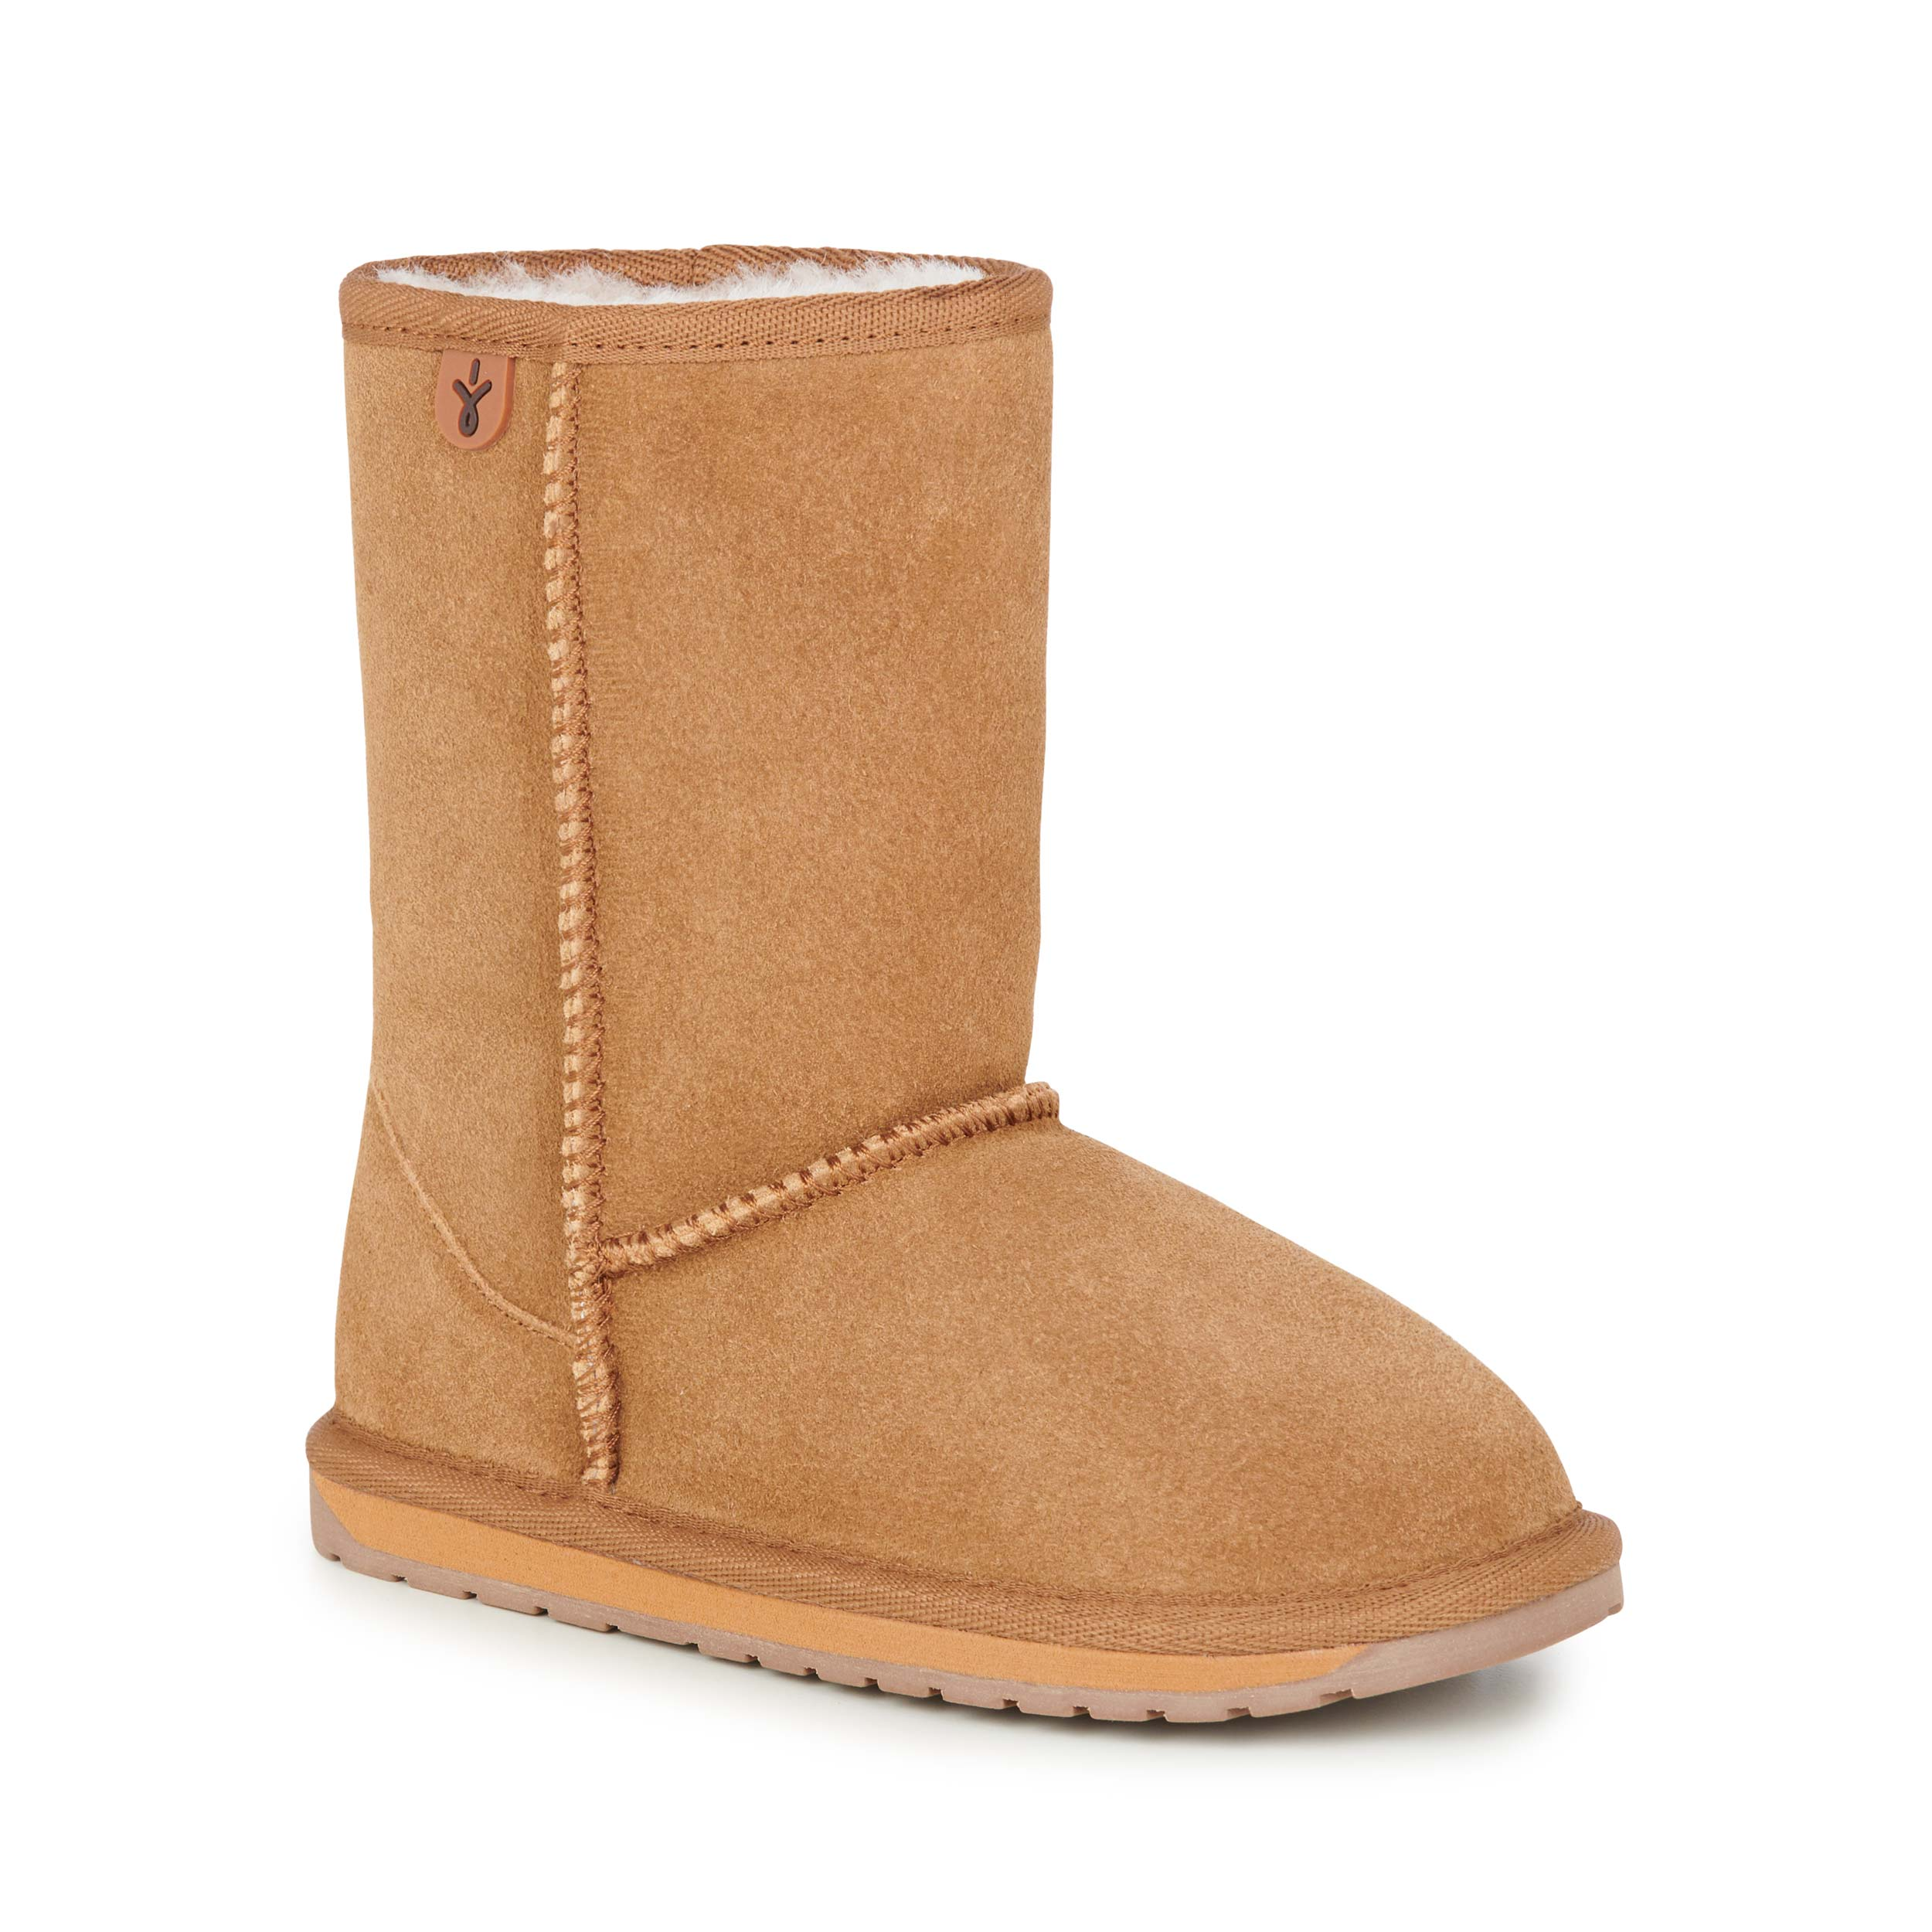 a67ad917f0e Details about EMU Australia Kids Wallaby Lo Deluxe Wool Boots